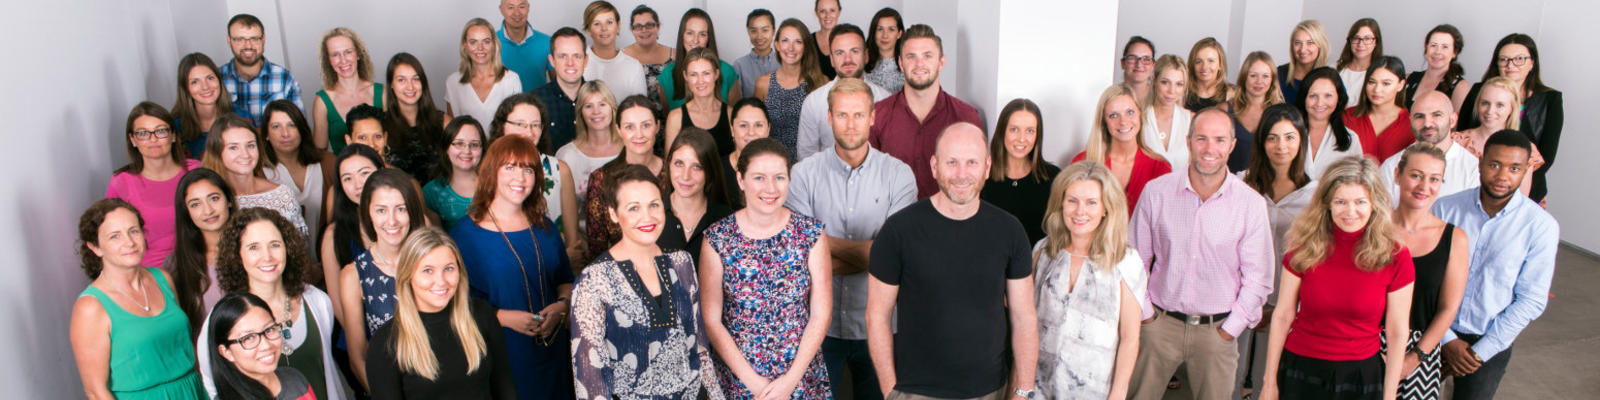 A company photo of the entire staff